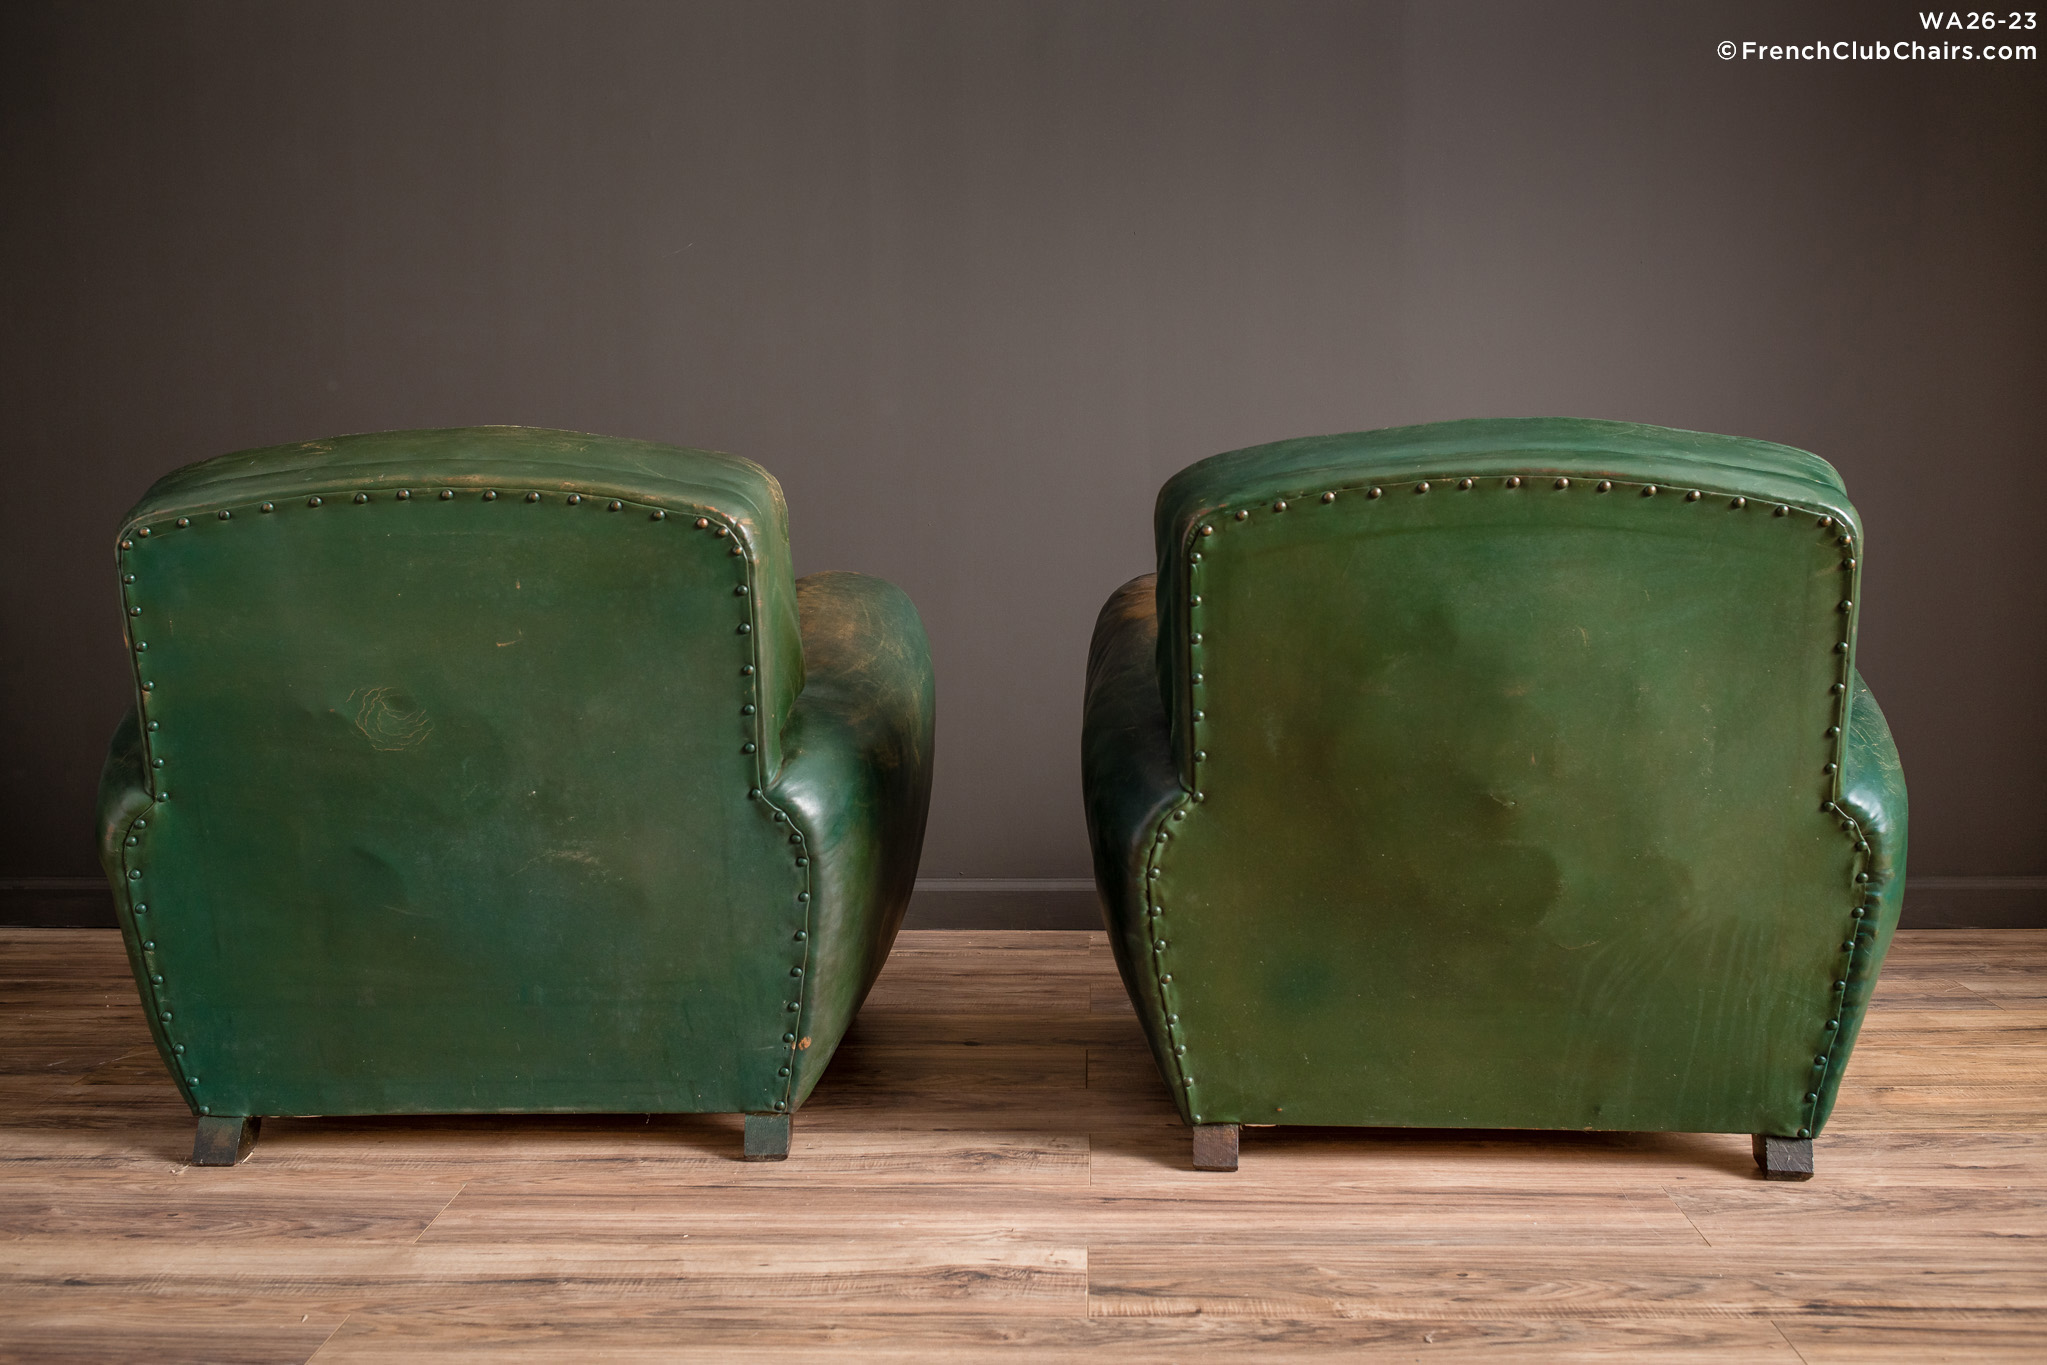 WA_26-23_Chairs_Green_Salon_Library_R_2BK-v01-williams-antiks-leather-french-club-chair-wa_fcccom